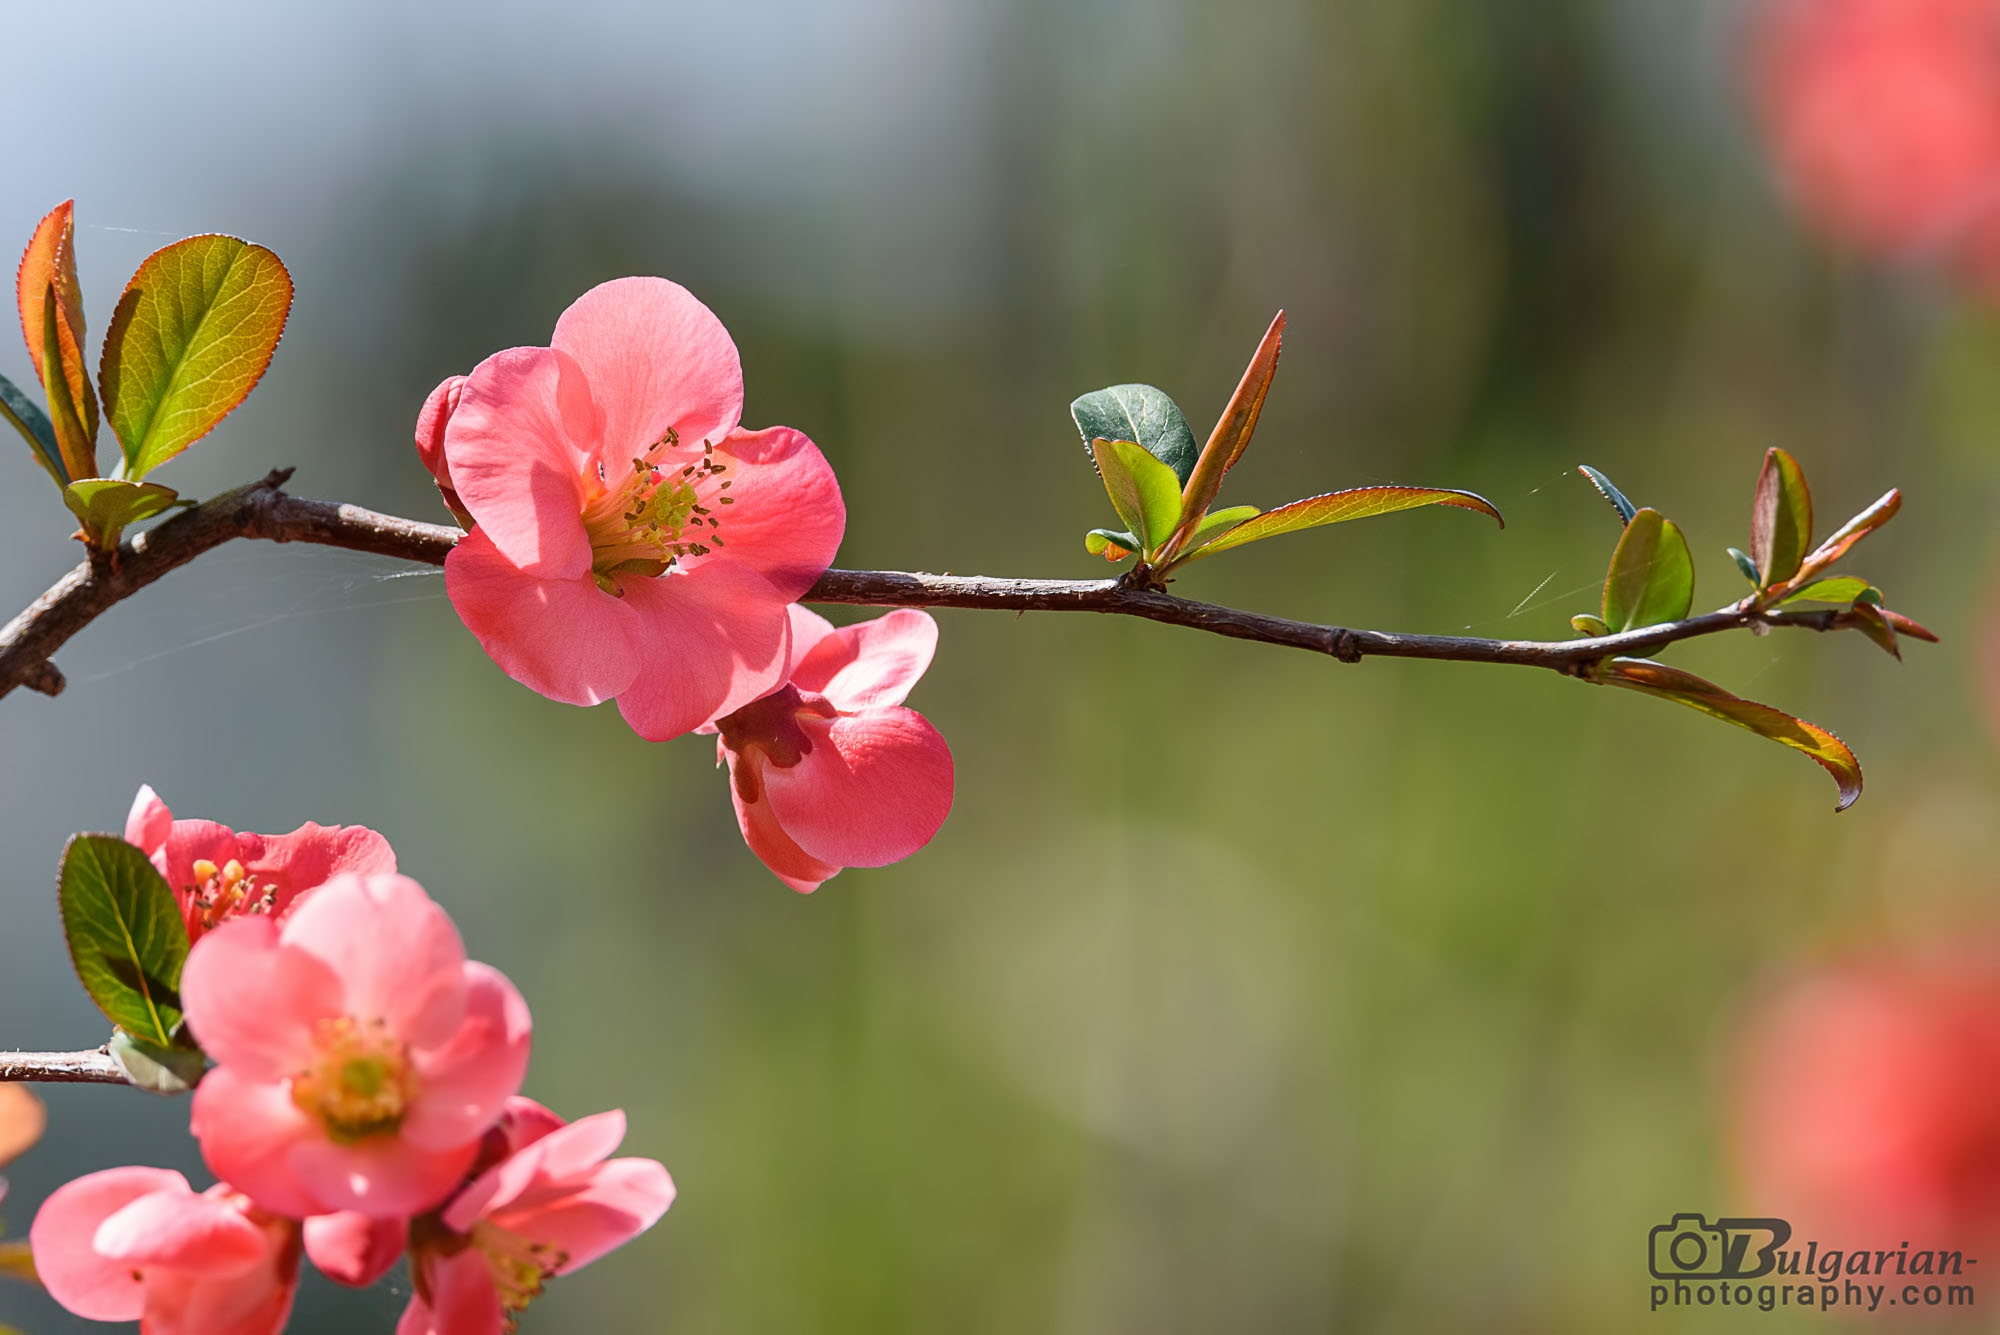 Chaenomeles - Japanese quince (Cydonia japonica)